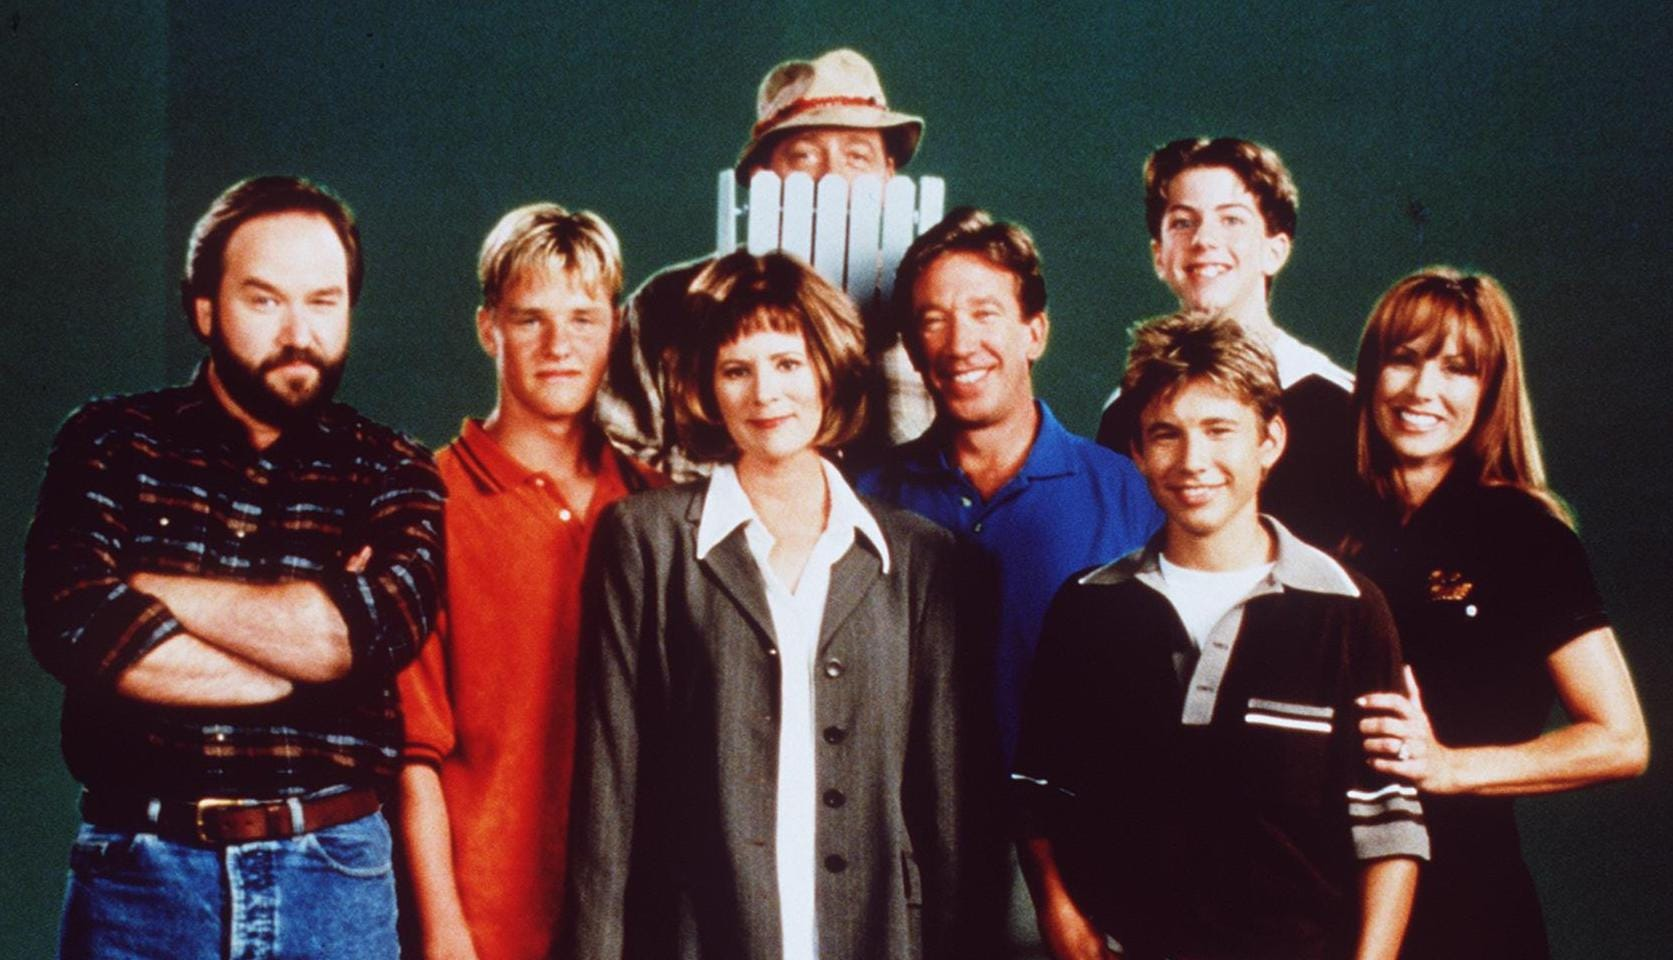 Home Improvement Cast Then And Now